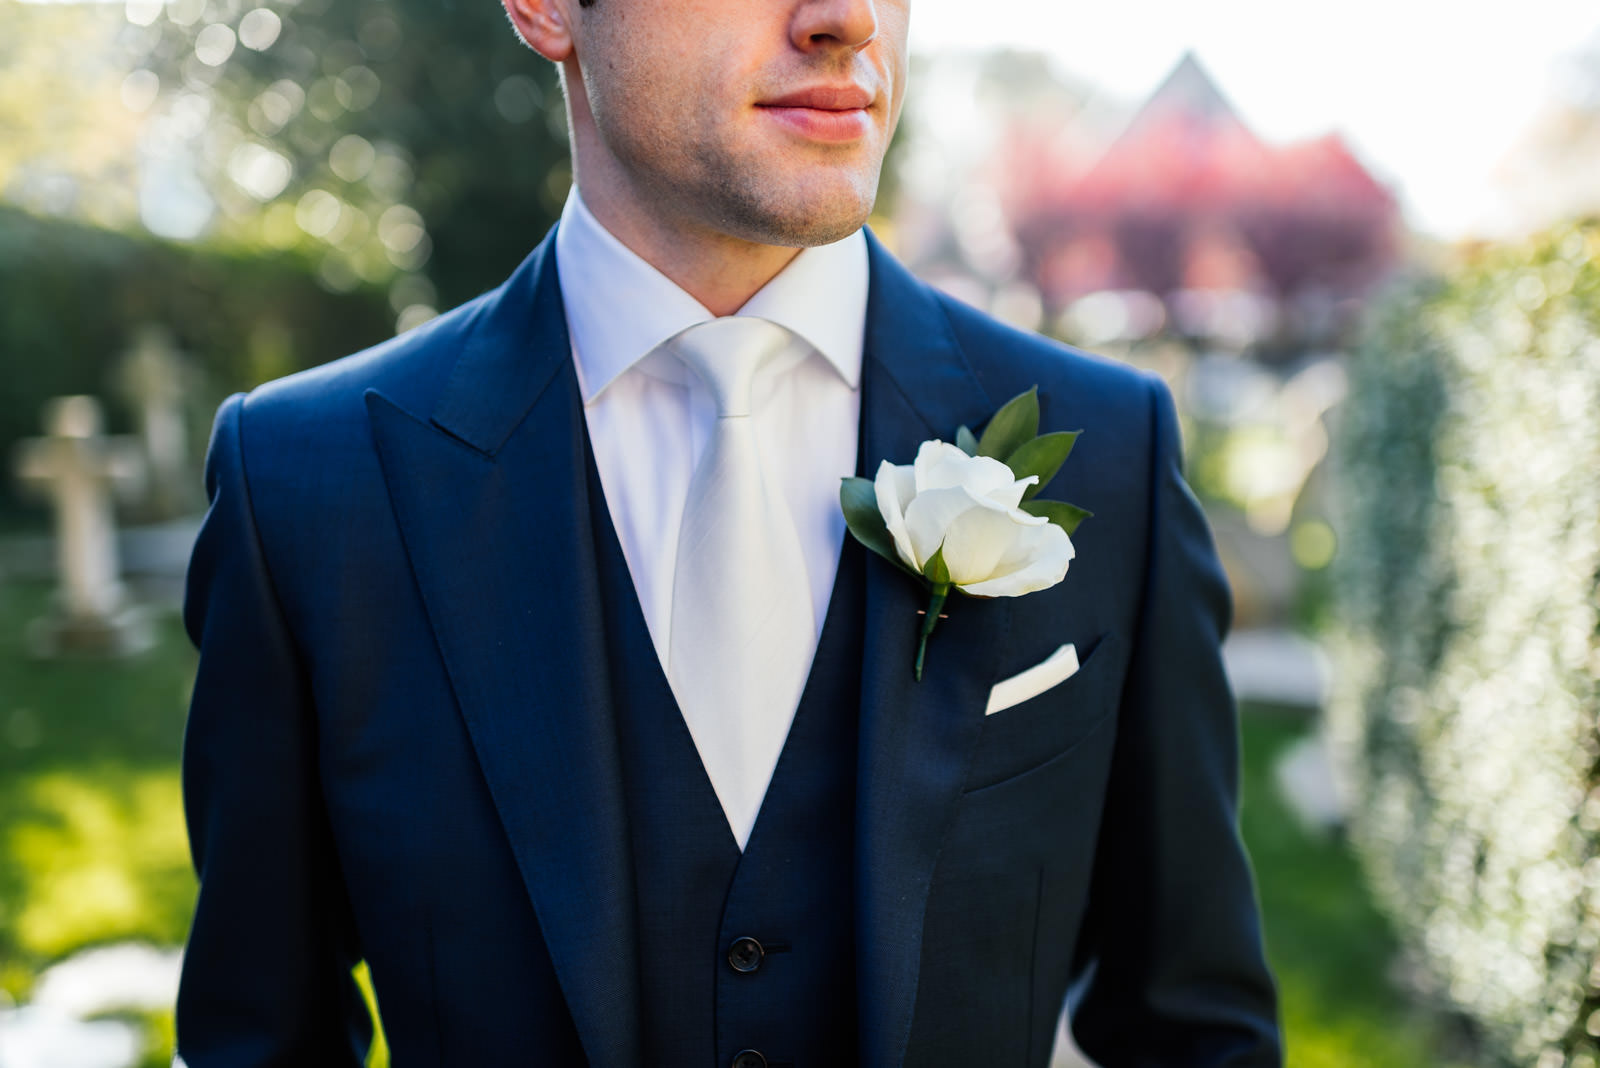 Groom button hole flower tie and suit detail